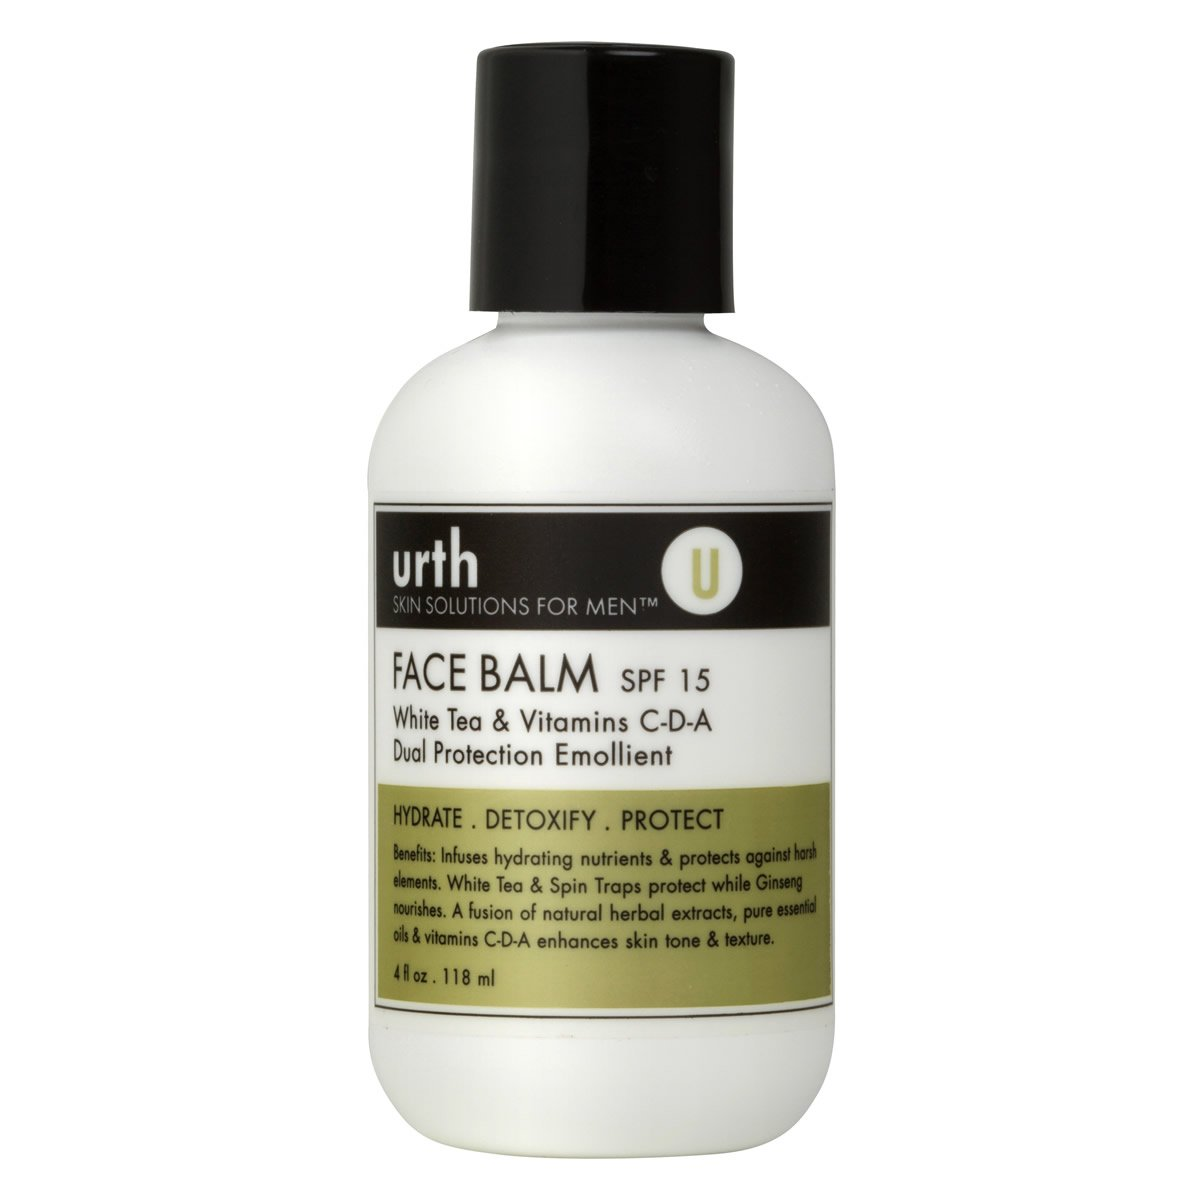 Urth Skin Solutions for Men Face Balm 4 ounces